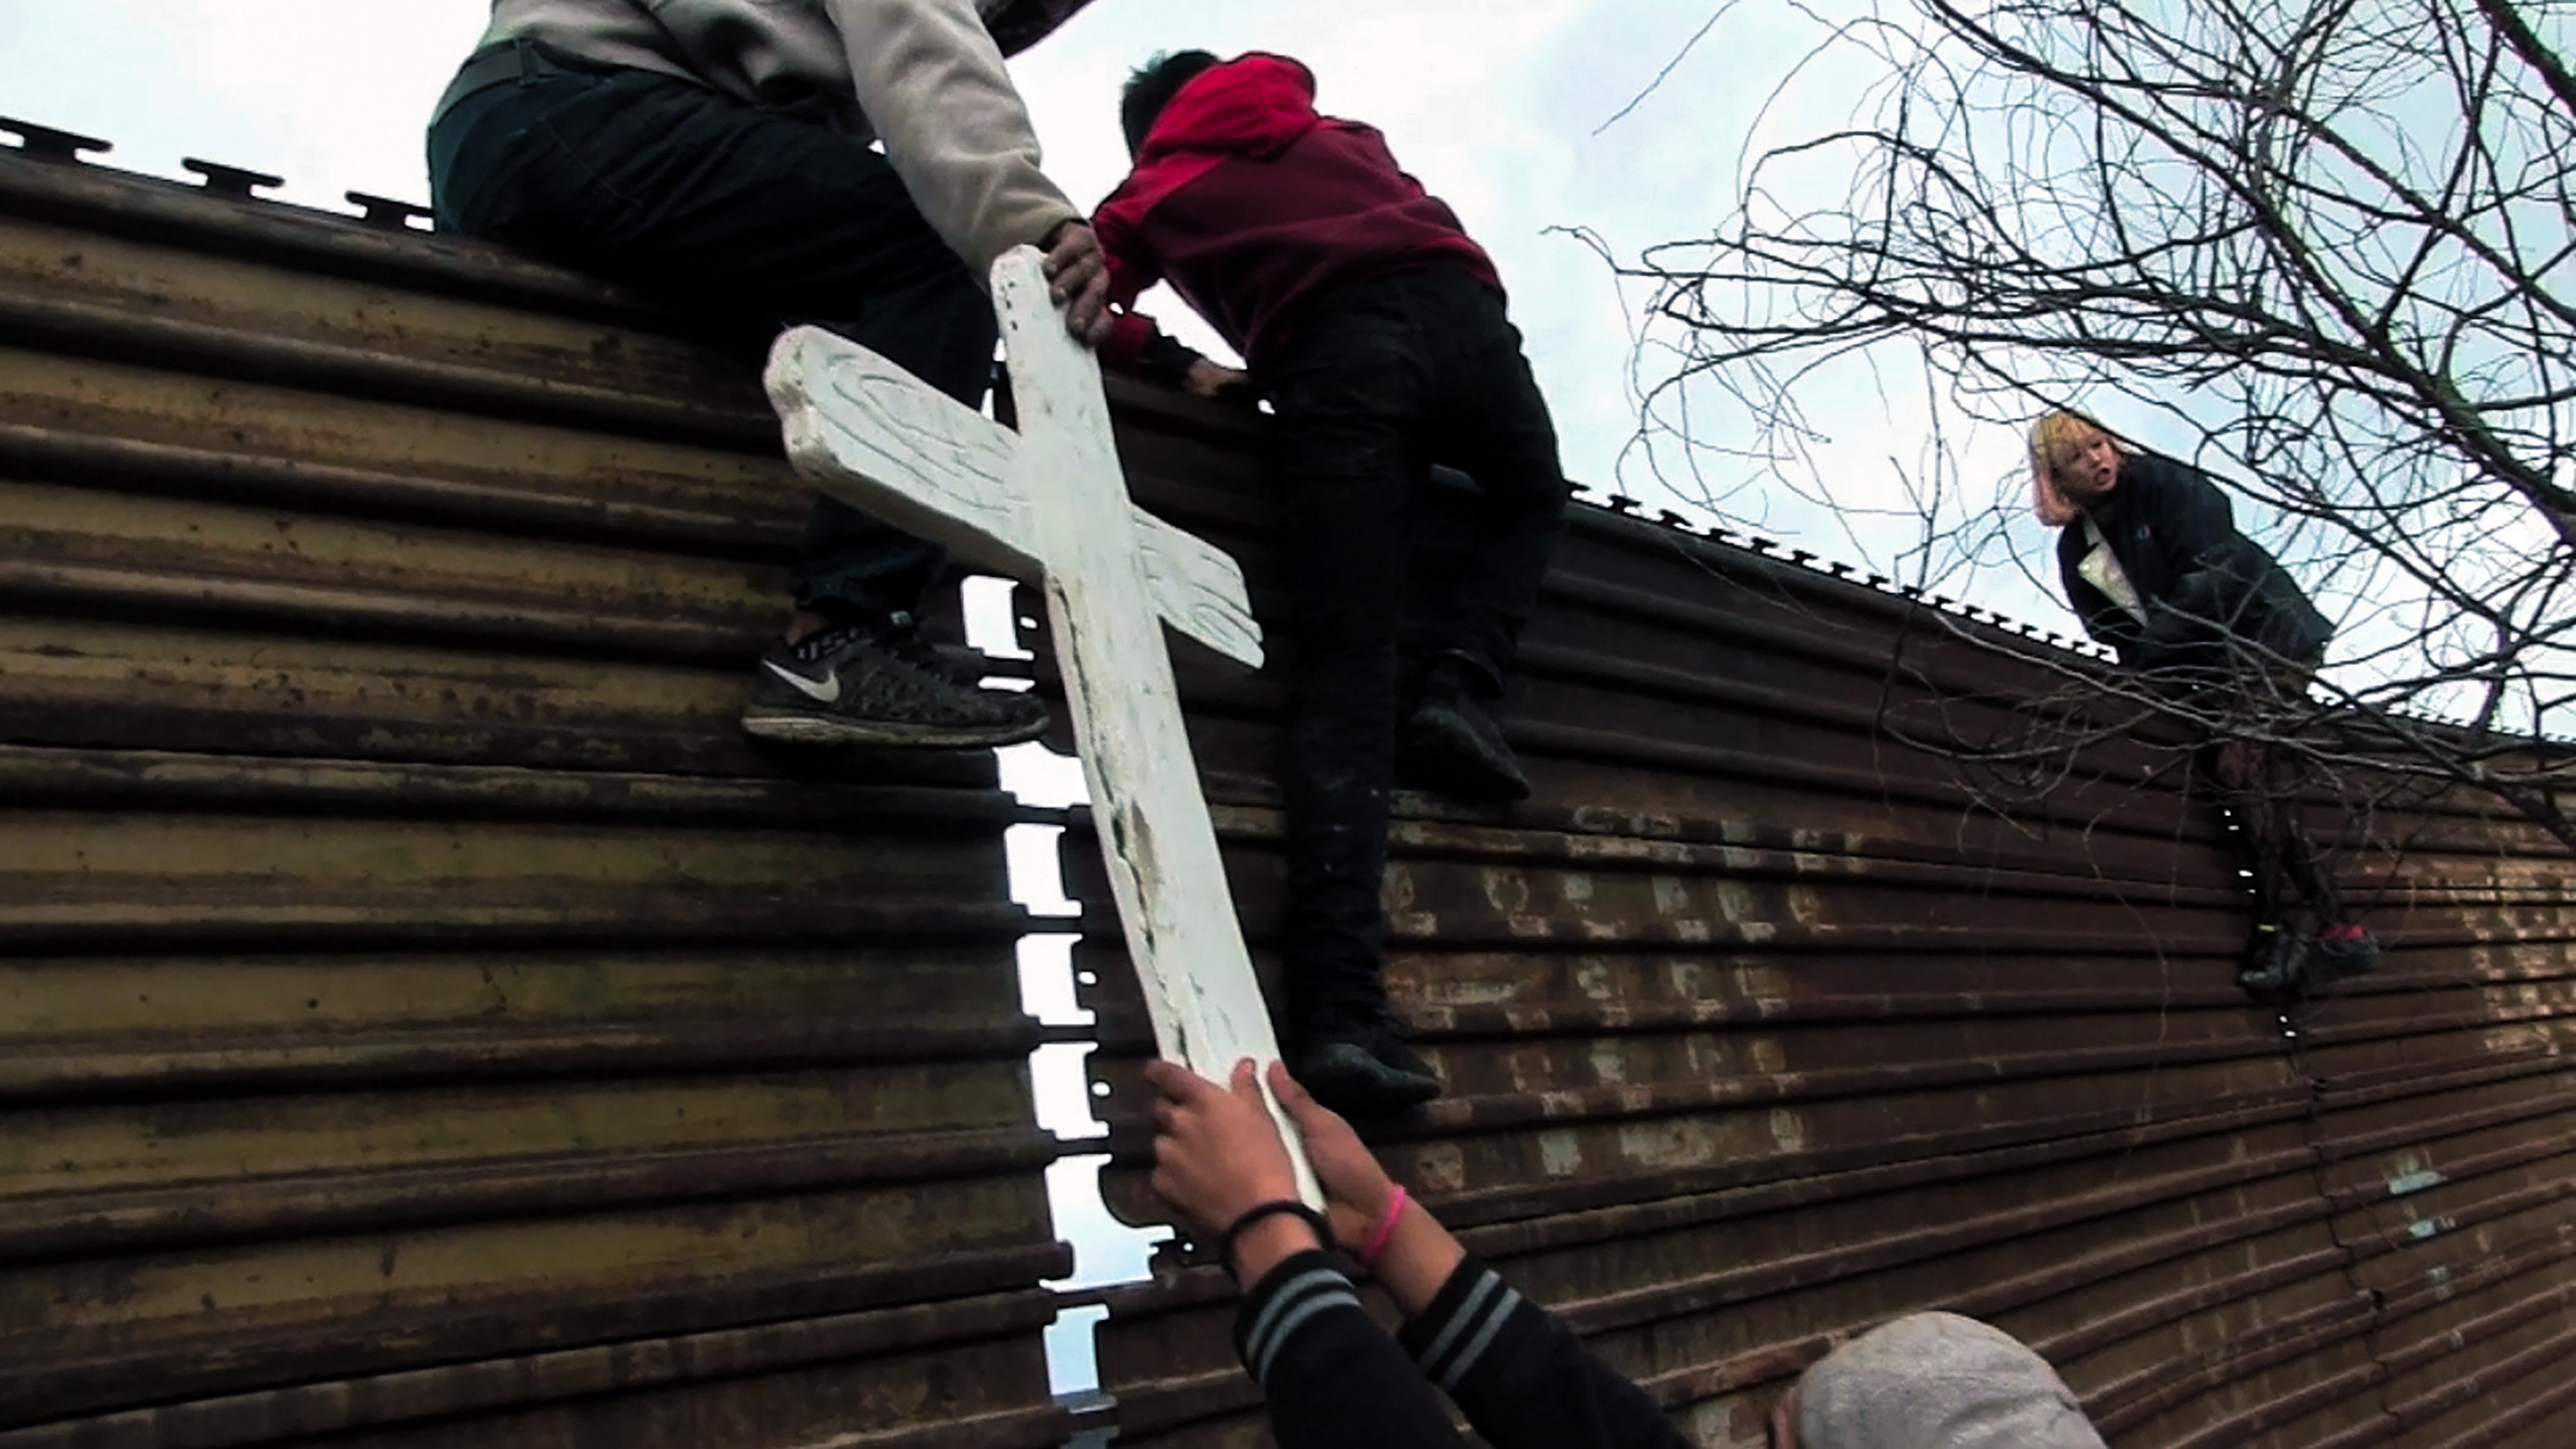 """Chim↑Pom, forming Team Libertad with the local residents and children, installed an object comprised of a hole, a cross labeled """"Libertad"""" and a shovel all made of plastic to pair up with The Grounds 